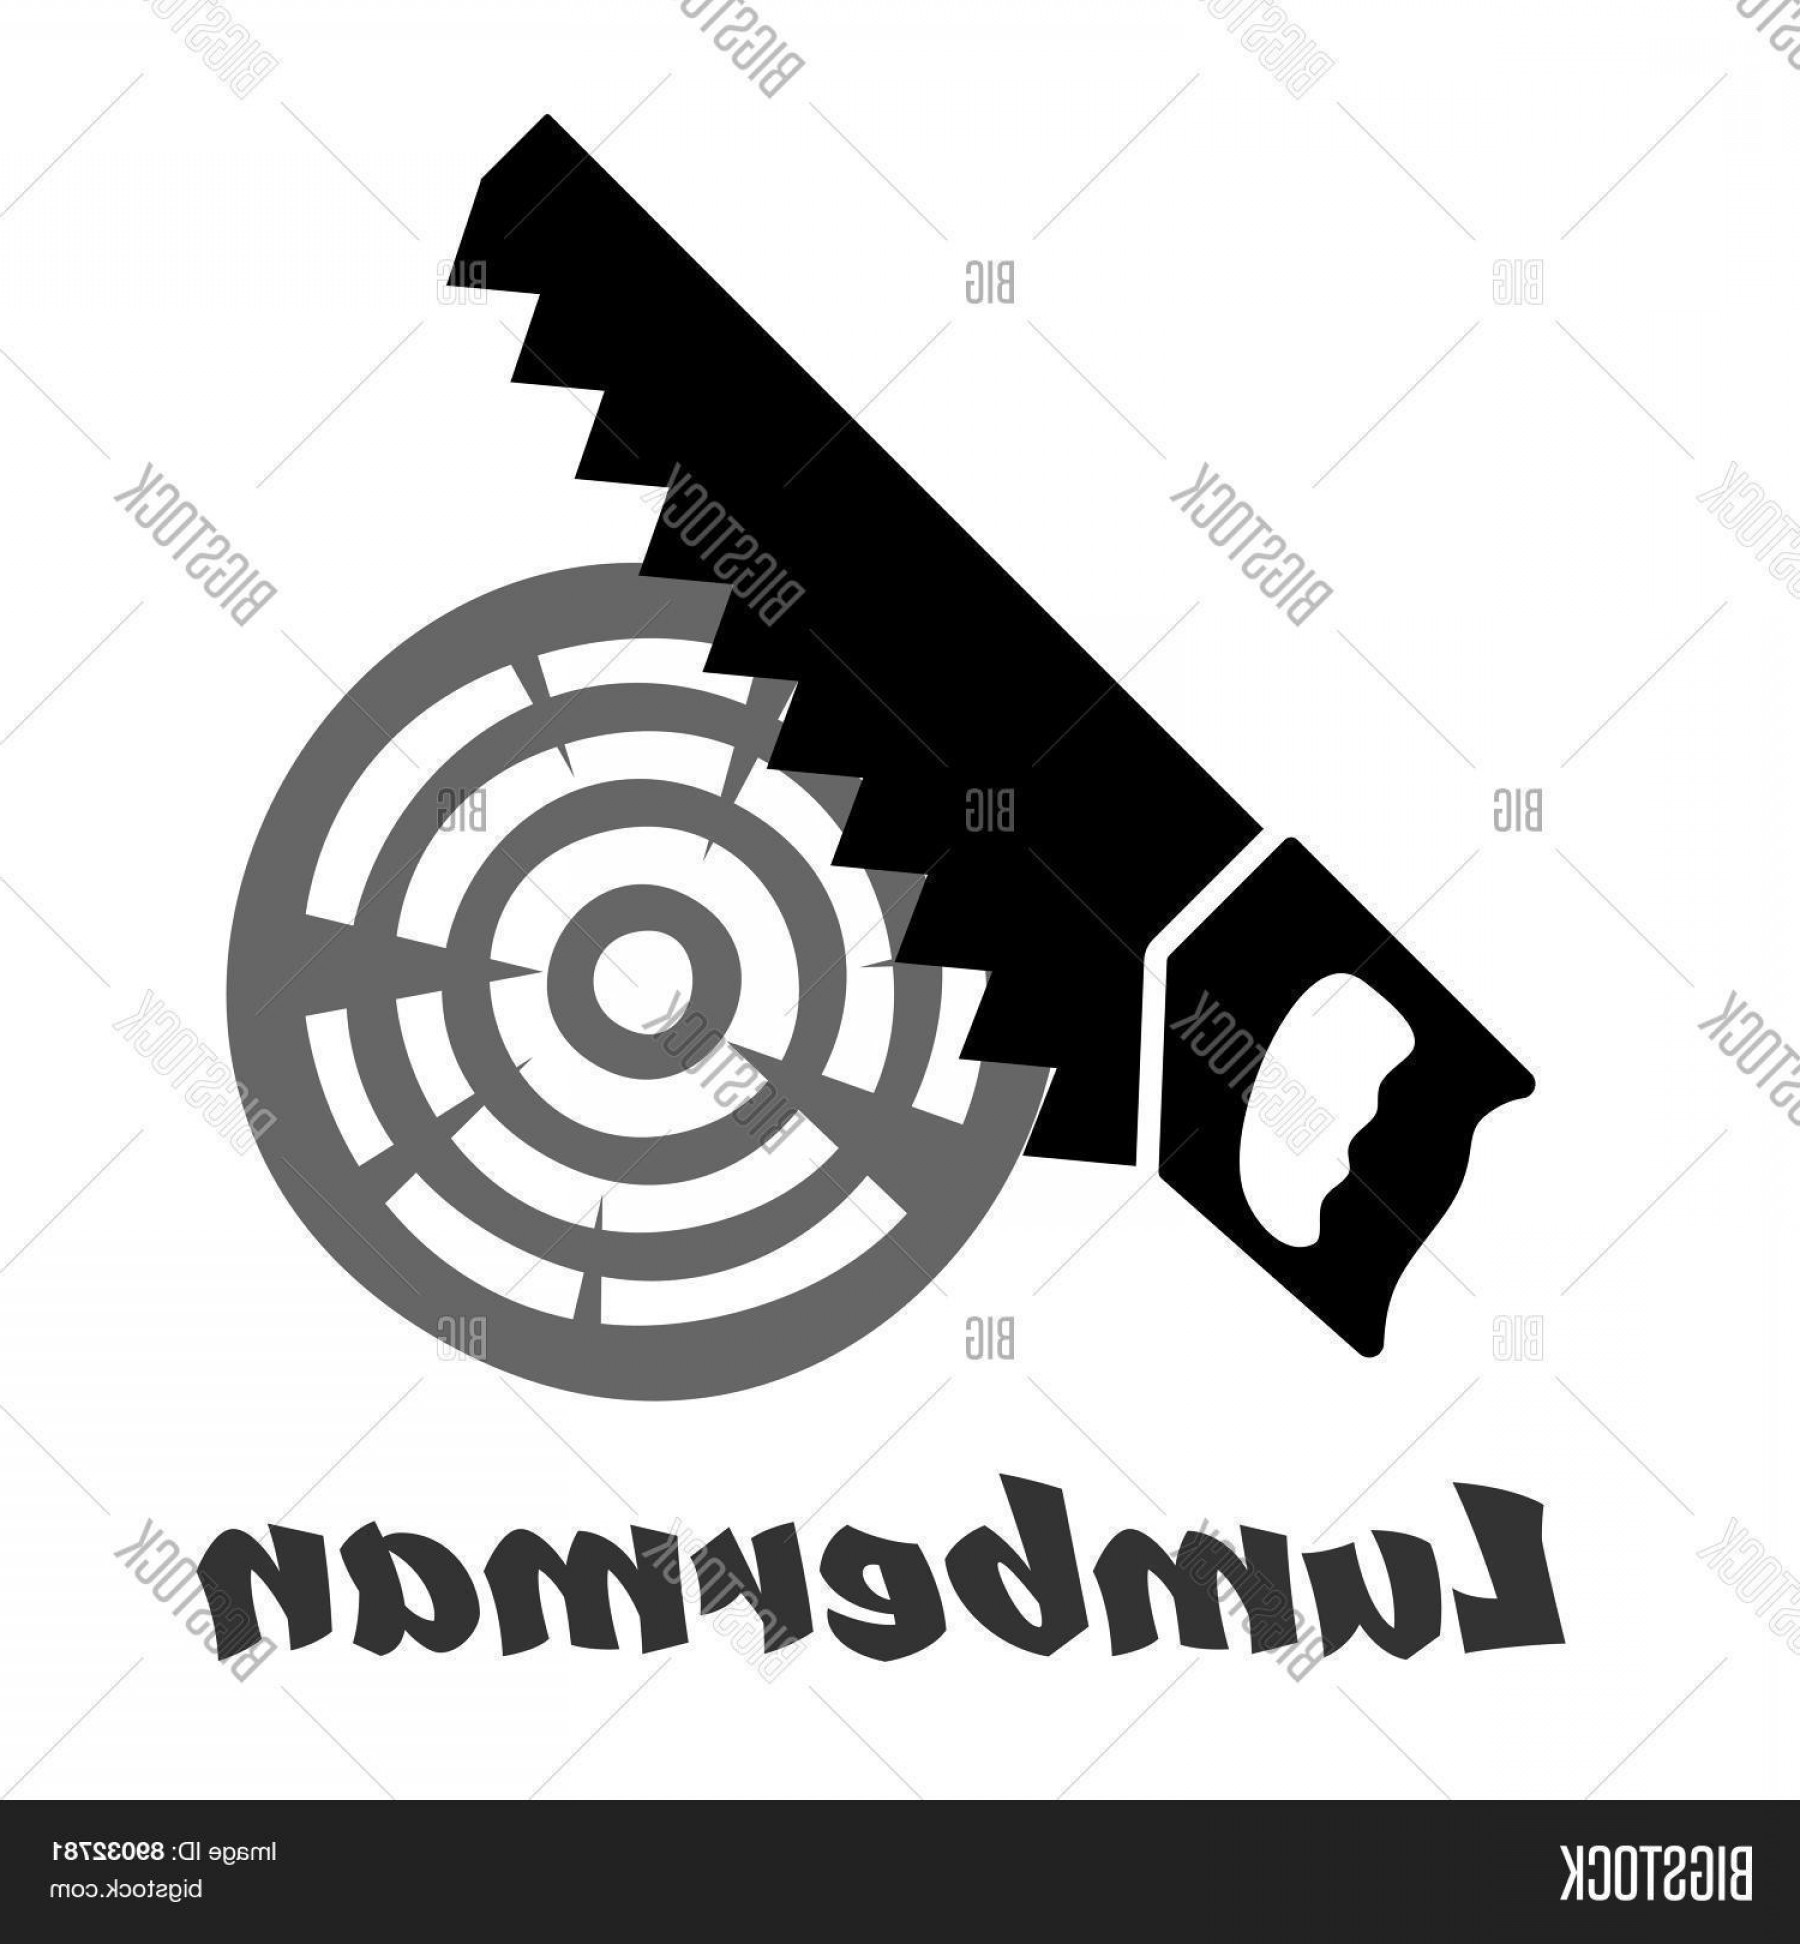 Wood Cutting Vector: Stock Vector Hand Saw Icon Cutting Wood Log